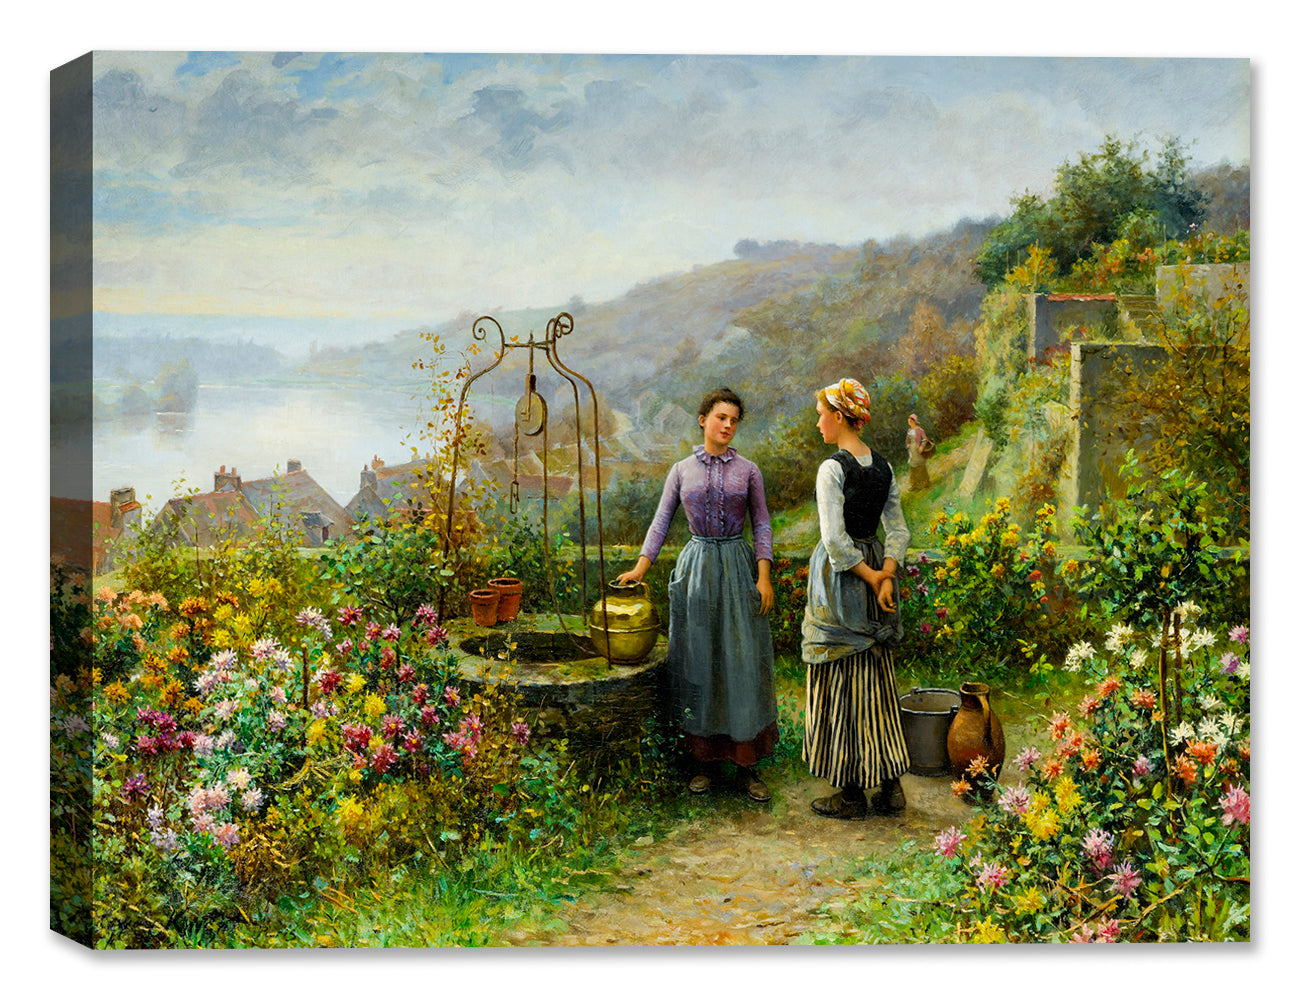 Gathering at the Well - Art by Daniel Knight - Canvas Art